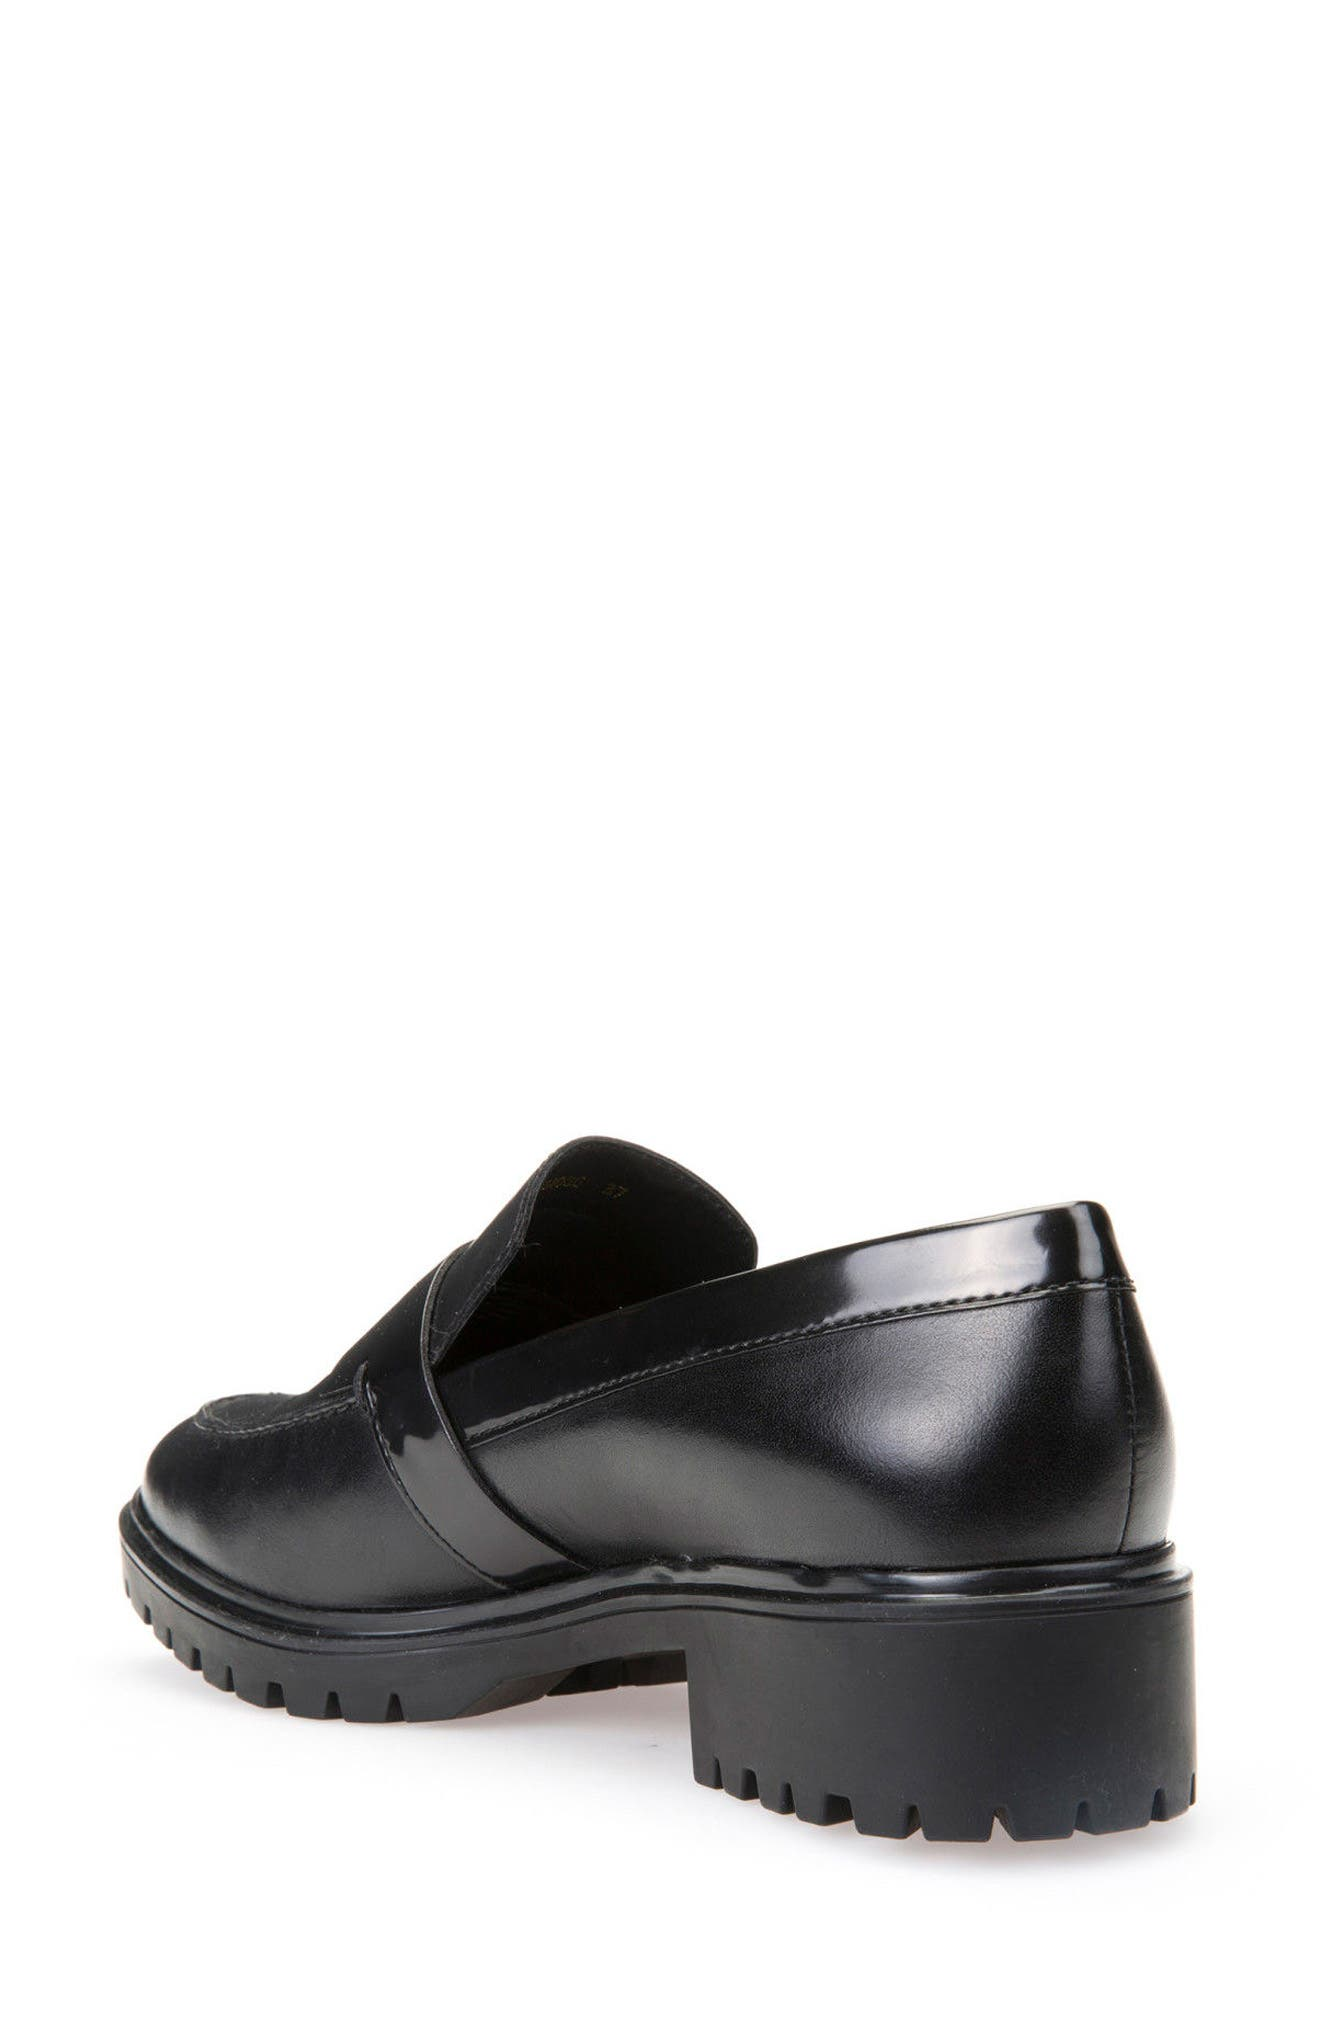 Peaceful Loafer Pump,                             Alternate thumbnail 2, color,                             001